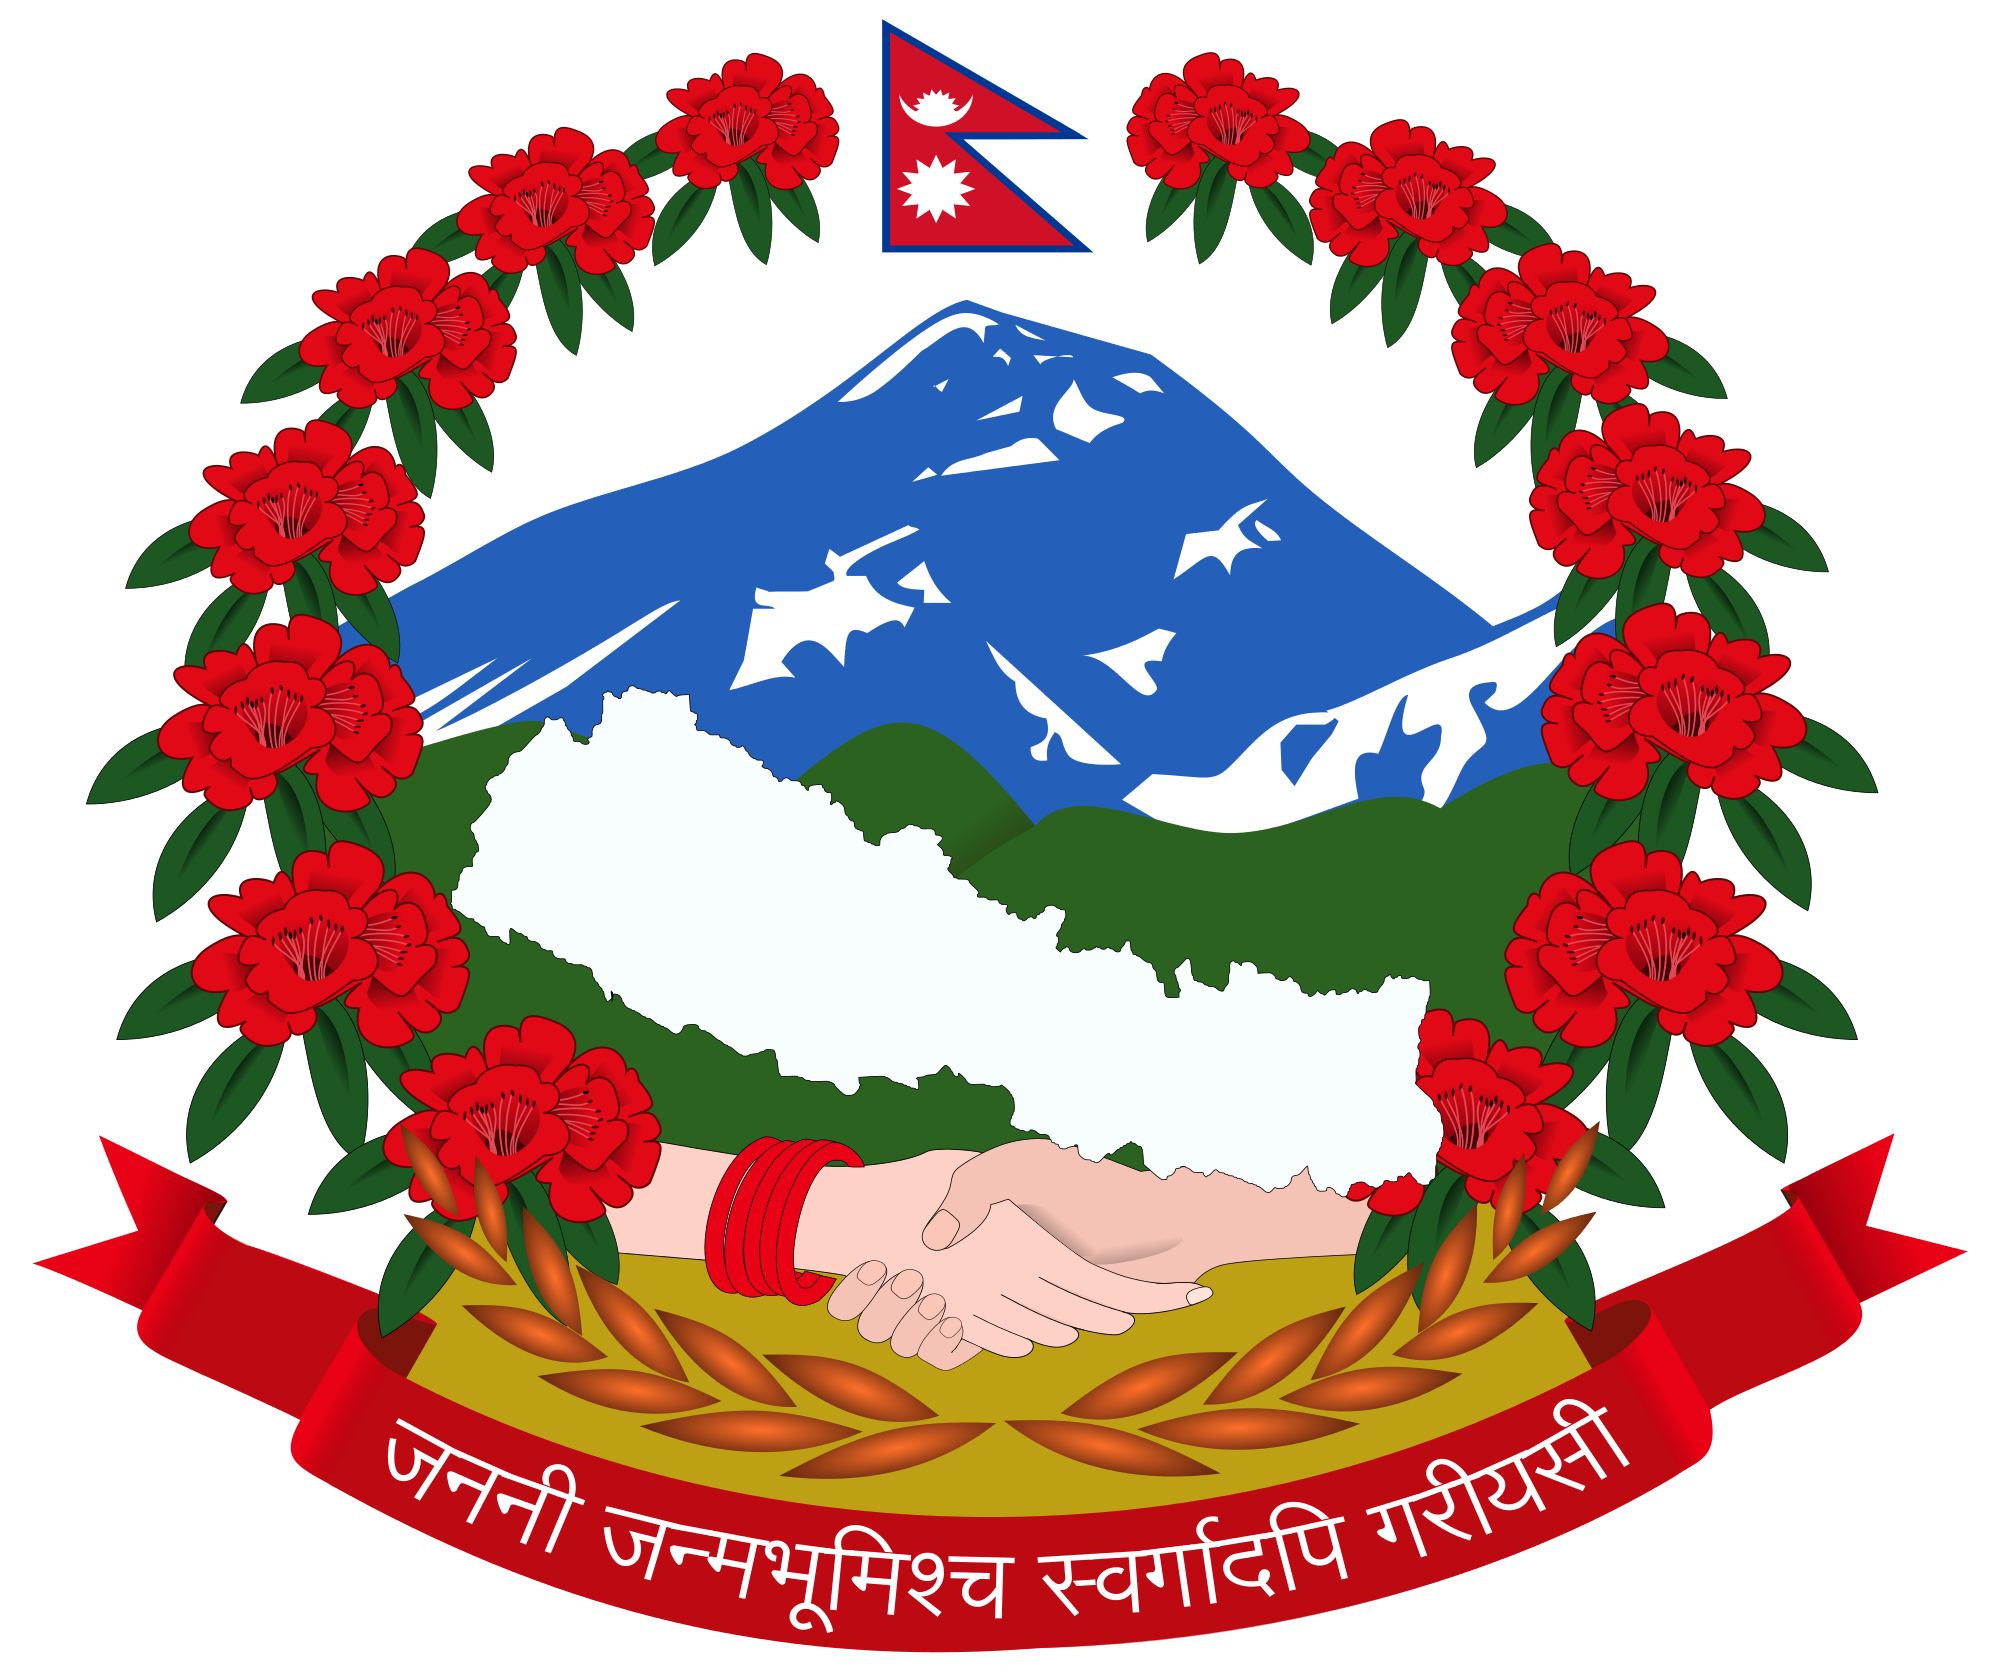 NEPAL GOVERNMENT OFFICIAL LOGO